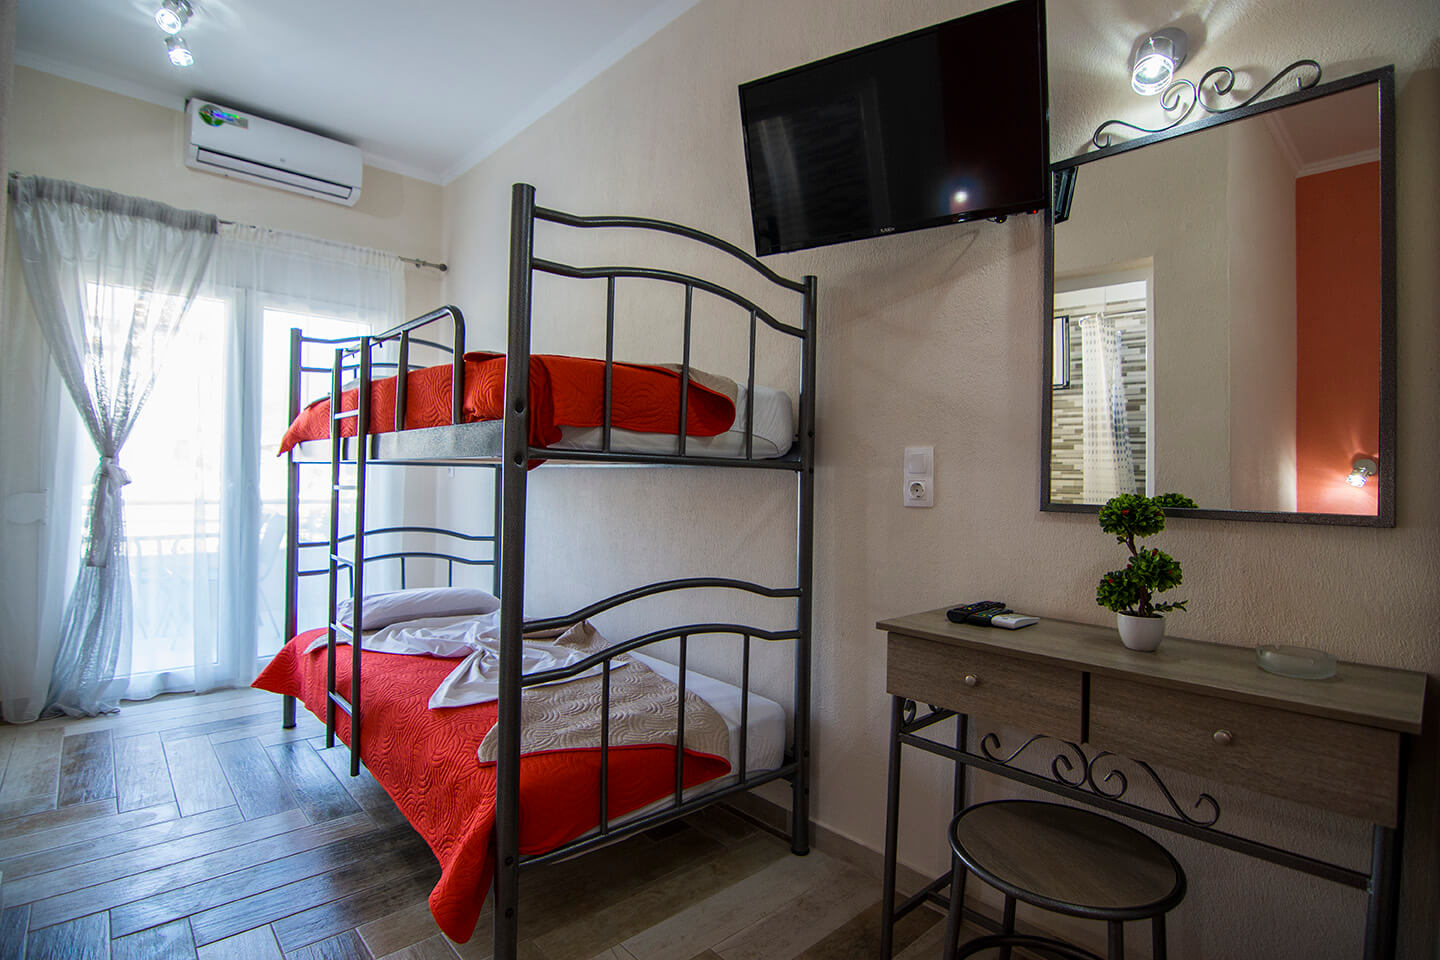 Christodoulos Eleftheria House Room 007 - Nea Vrasna - Rent Rooms - Apartments - Hotel